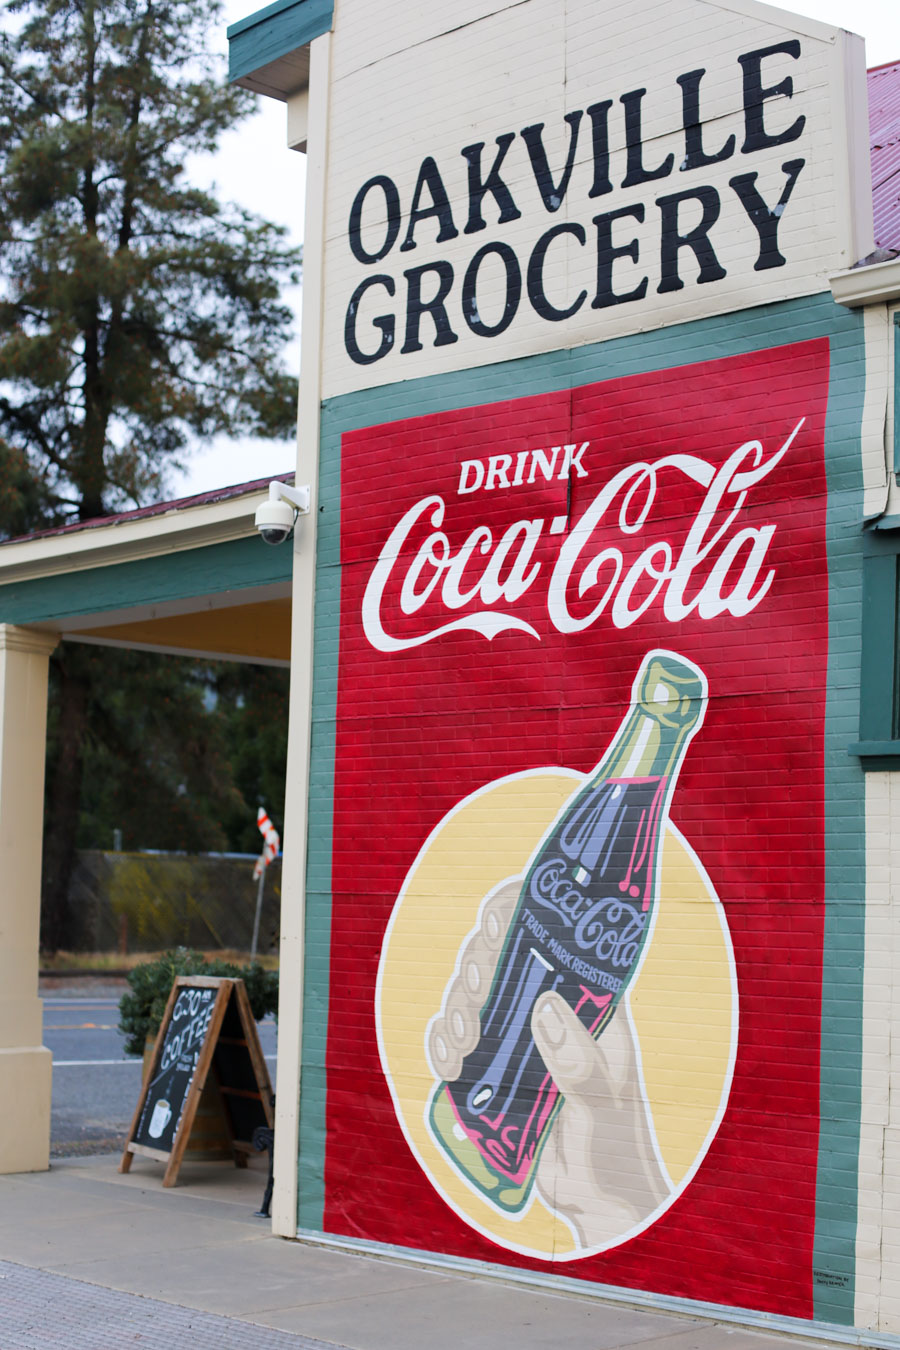 Oakville Grocery Photos + Reviews. Se the best market in Napa Valley. A great lunch restaurant for wine tasting on thee St. Helena Highway.#travel